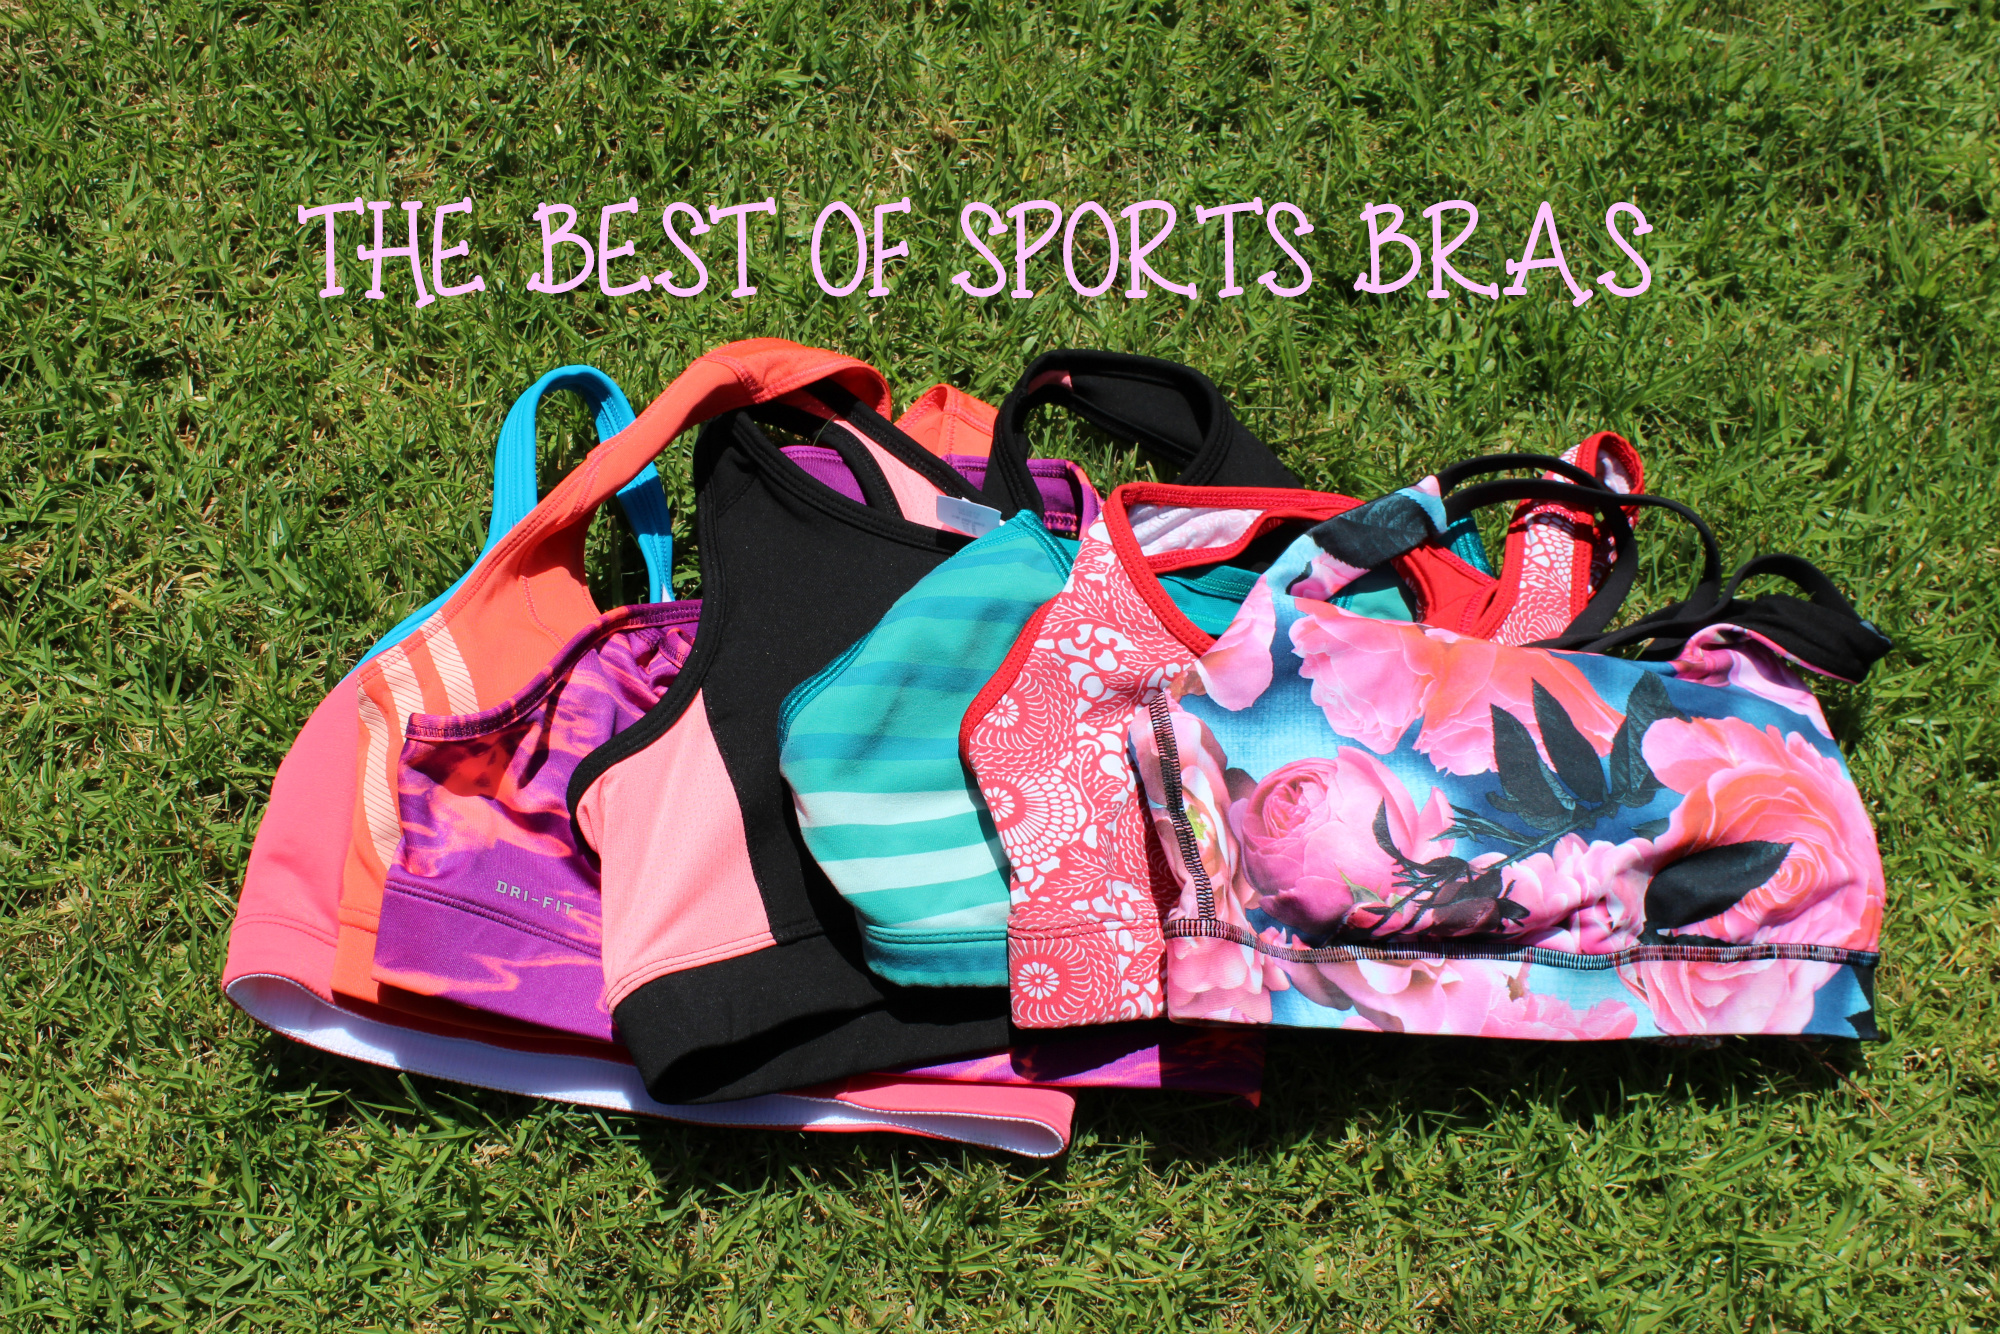 THE BEST OF SPORTS BRAS